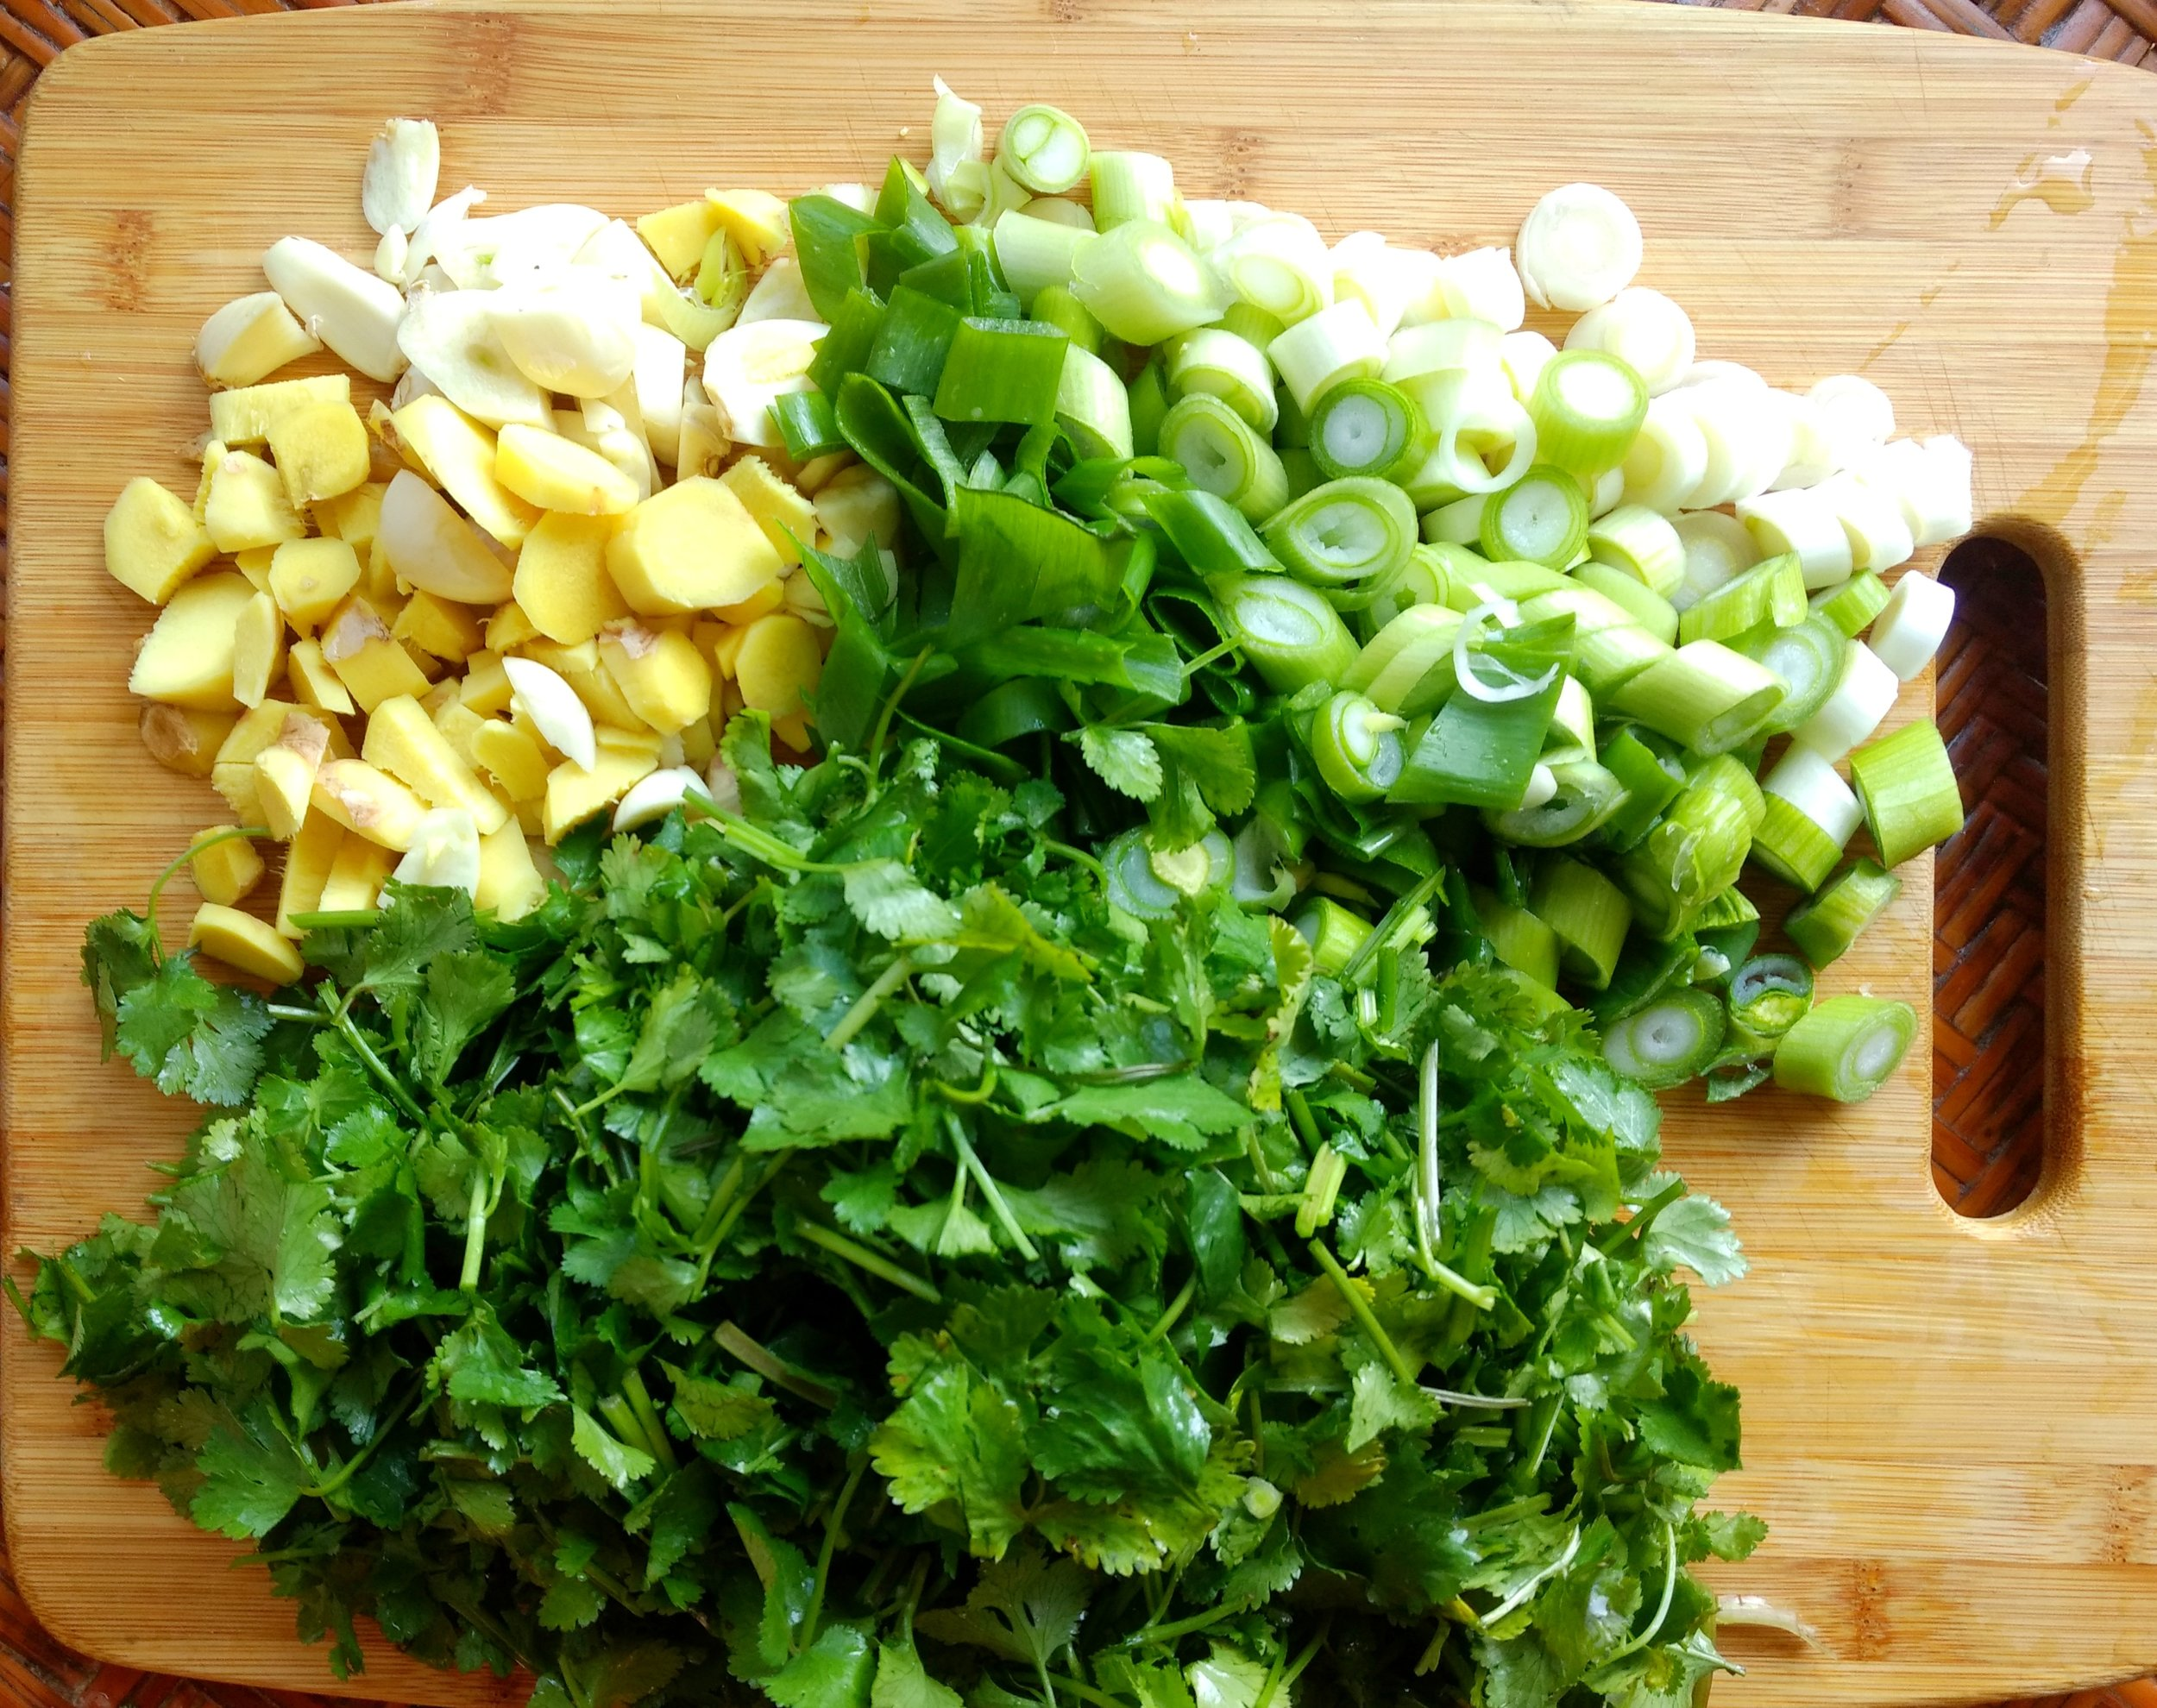 1- Roughly chop the garlic scallions,, coriander and ginger.